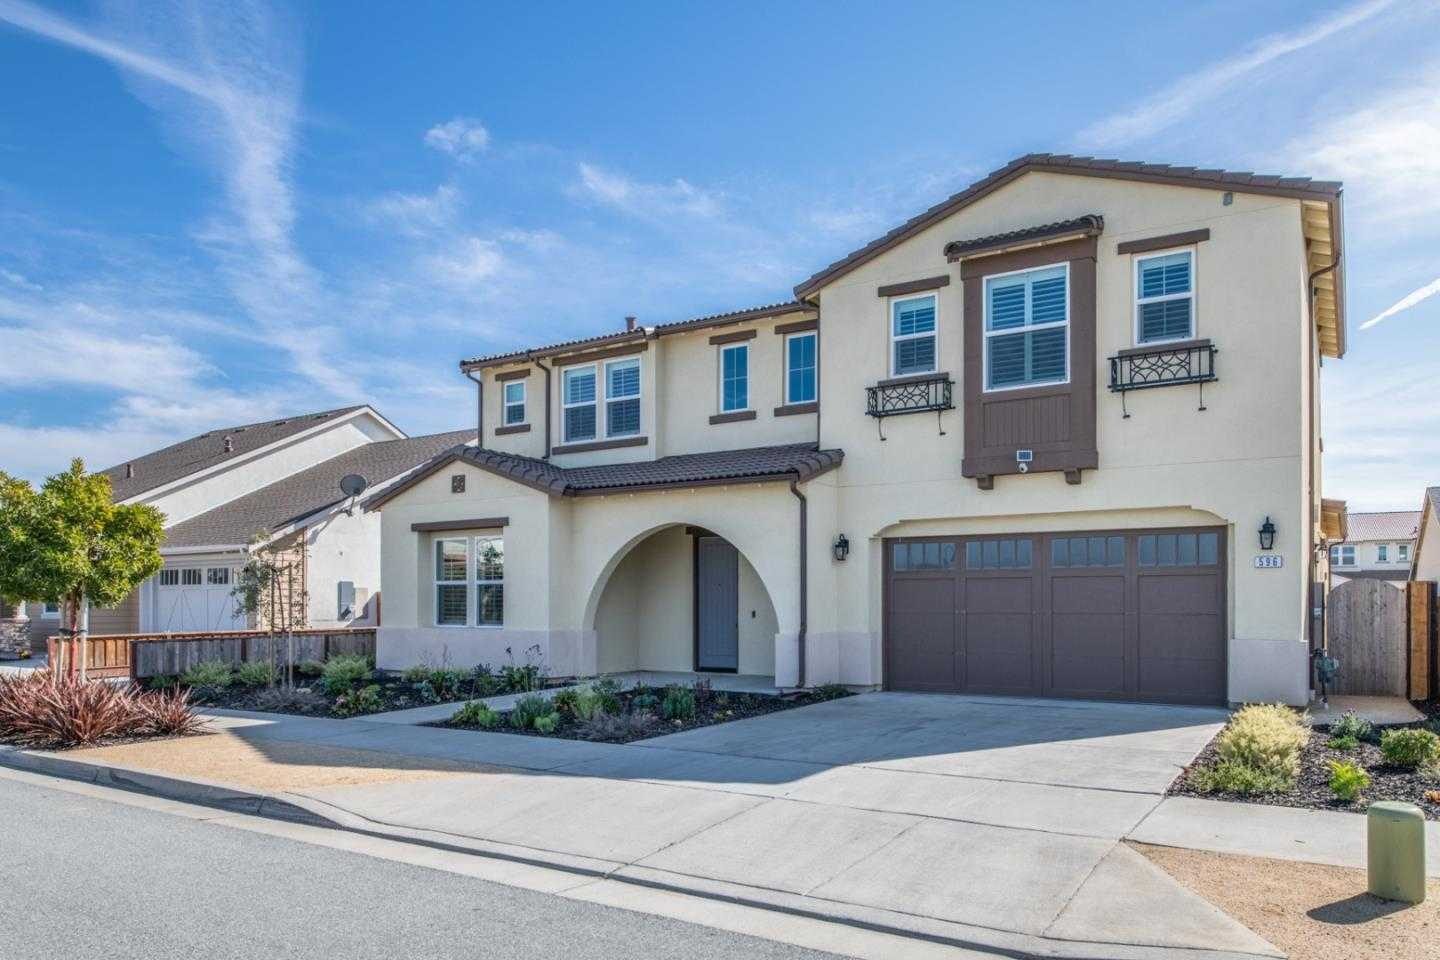 $1,262,000 - 7Br/4Ba -  for Sale in Marina